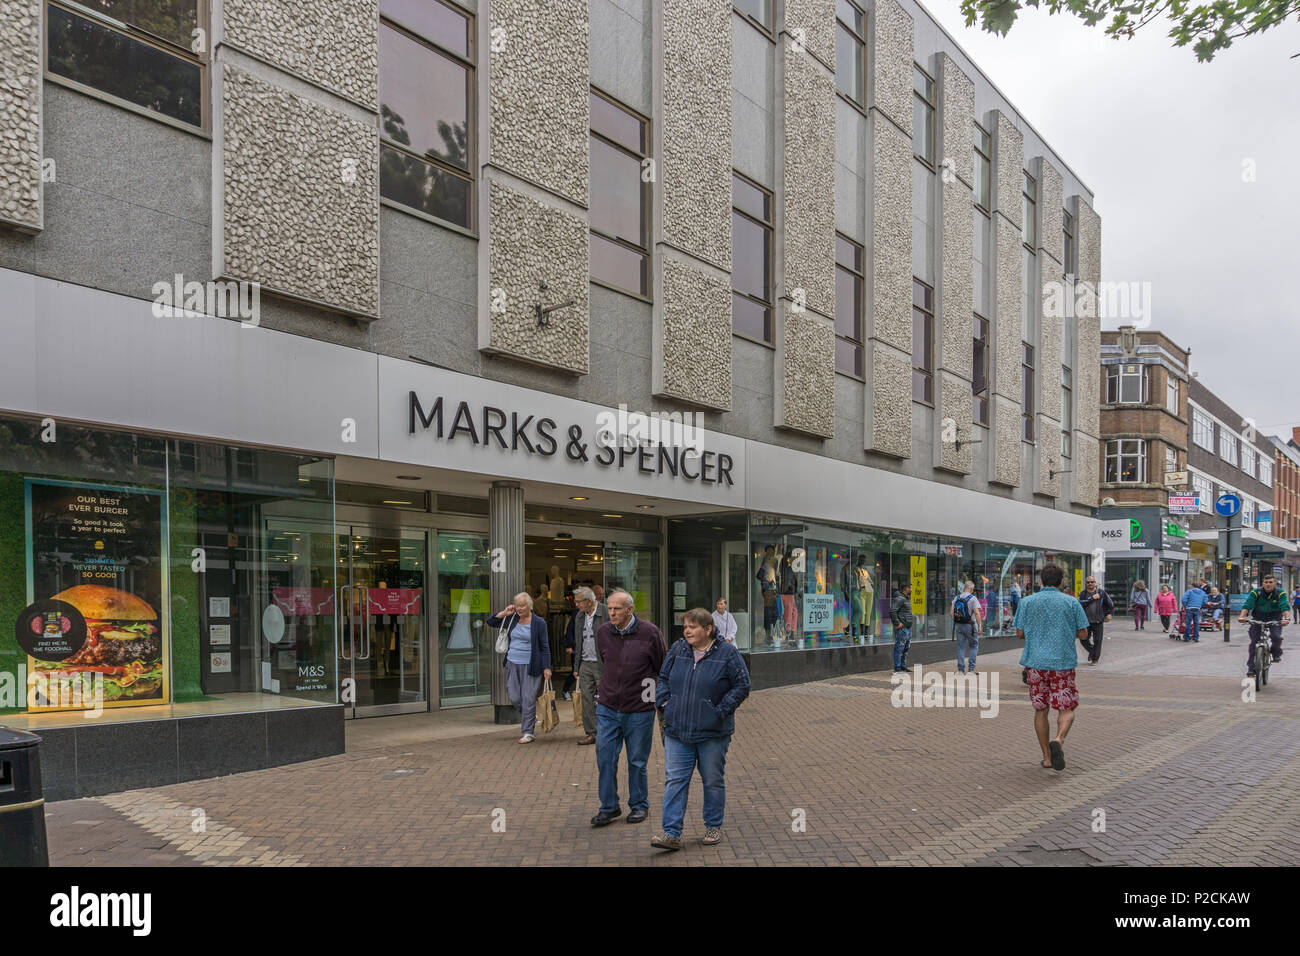 Marks and Spencer store in Abington Street, Northampton, UK; affected by the firm's closure programme and due to close on 11 August 2018 - Stock Image